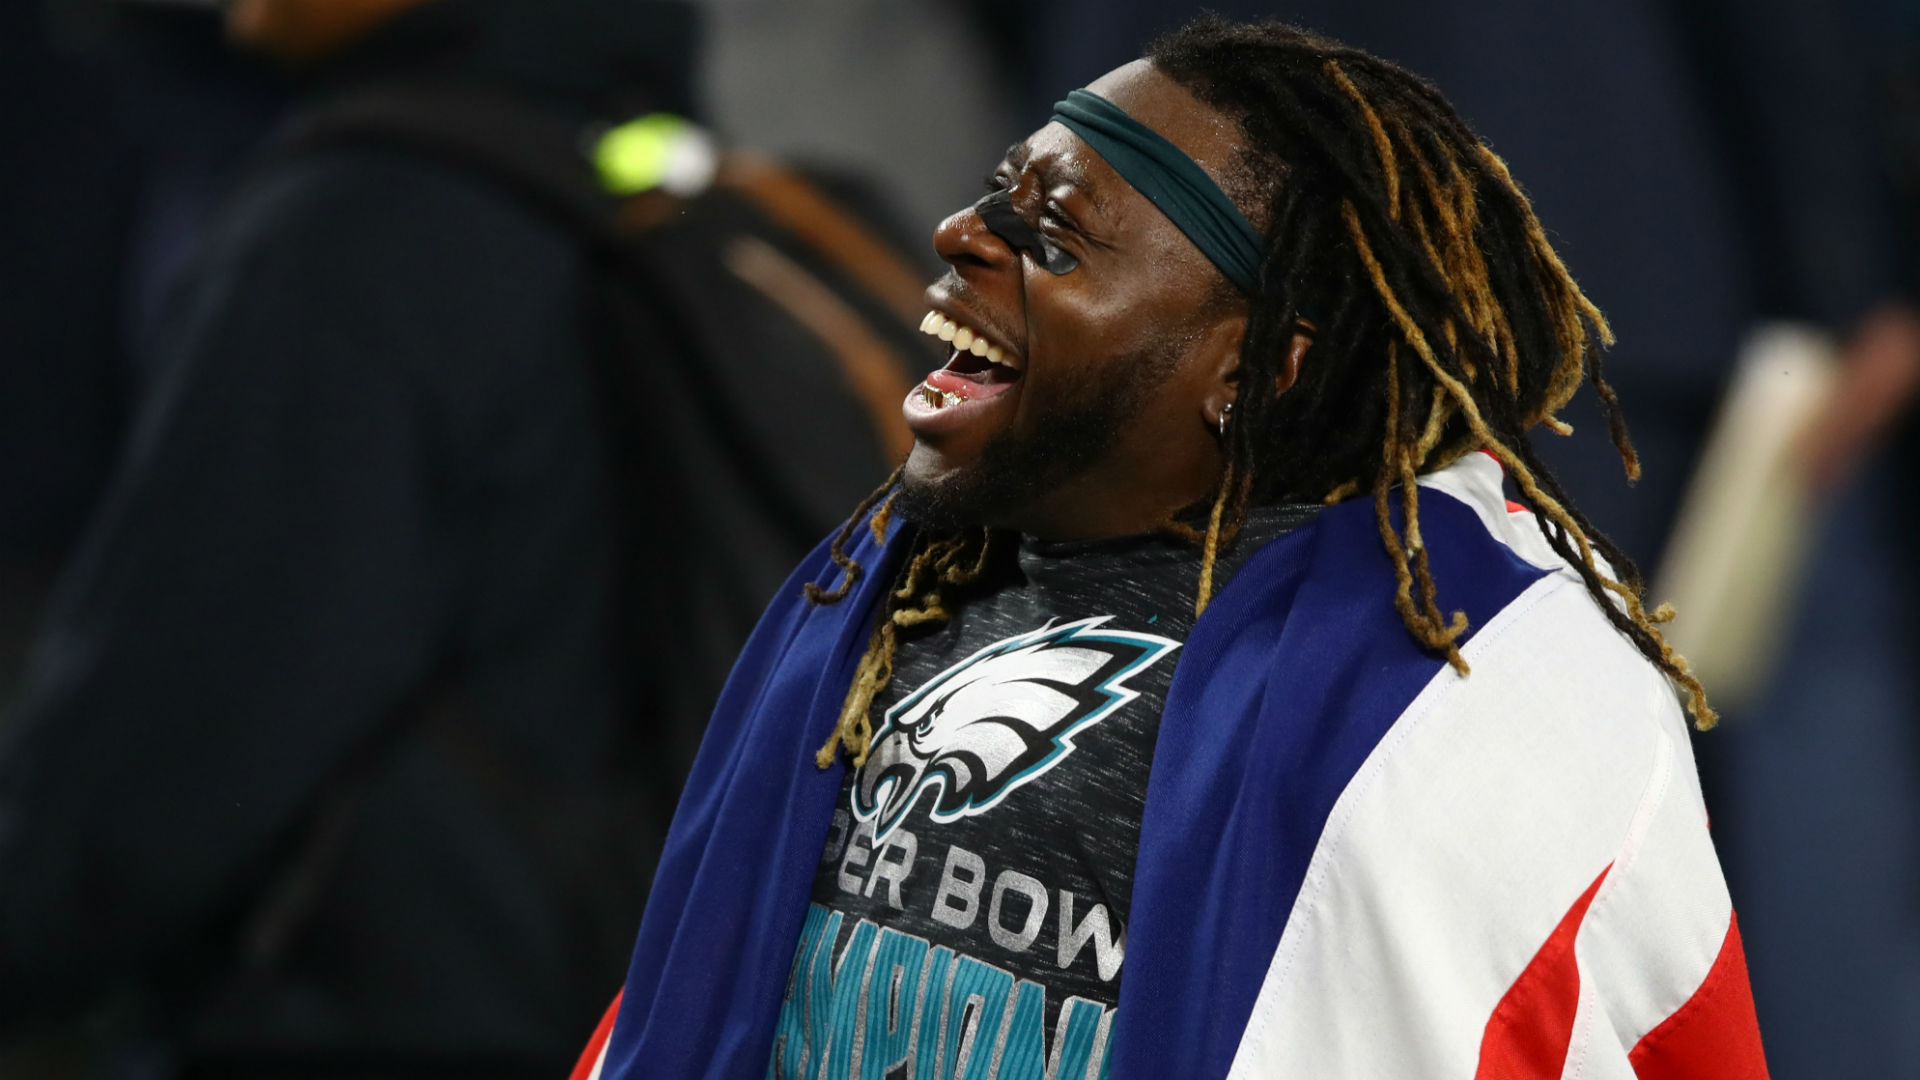 Eagles' Jay Ajayi Sued For Trashing Mansion, Accused of Pushing Home Owner